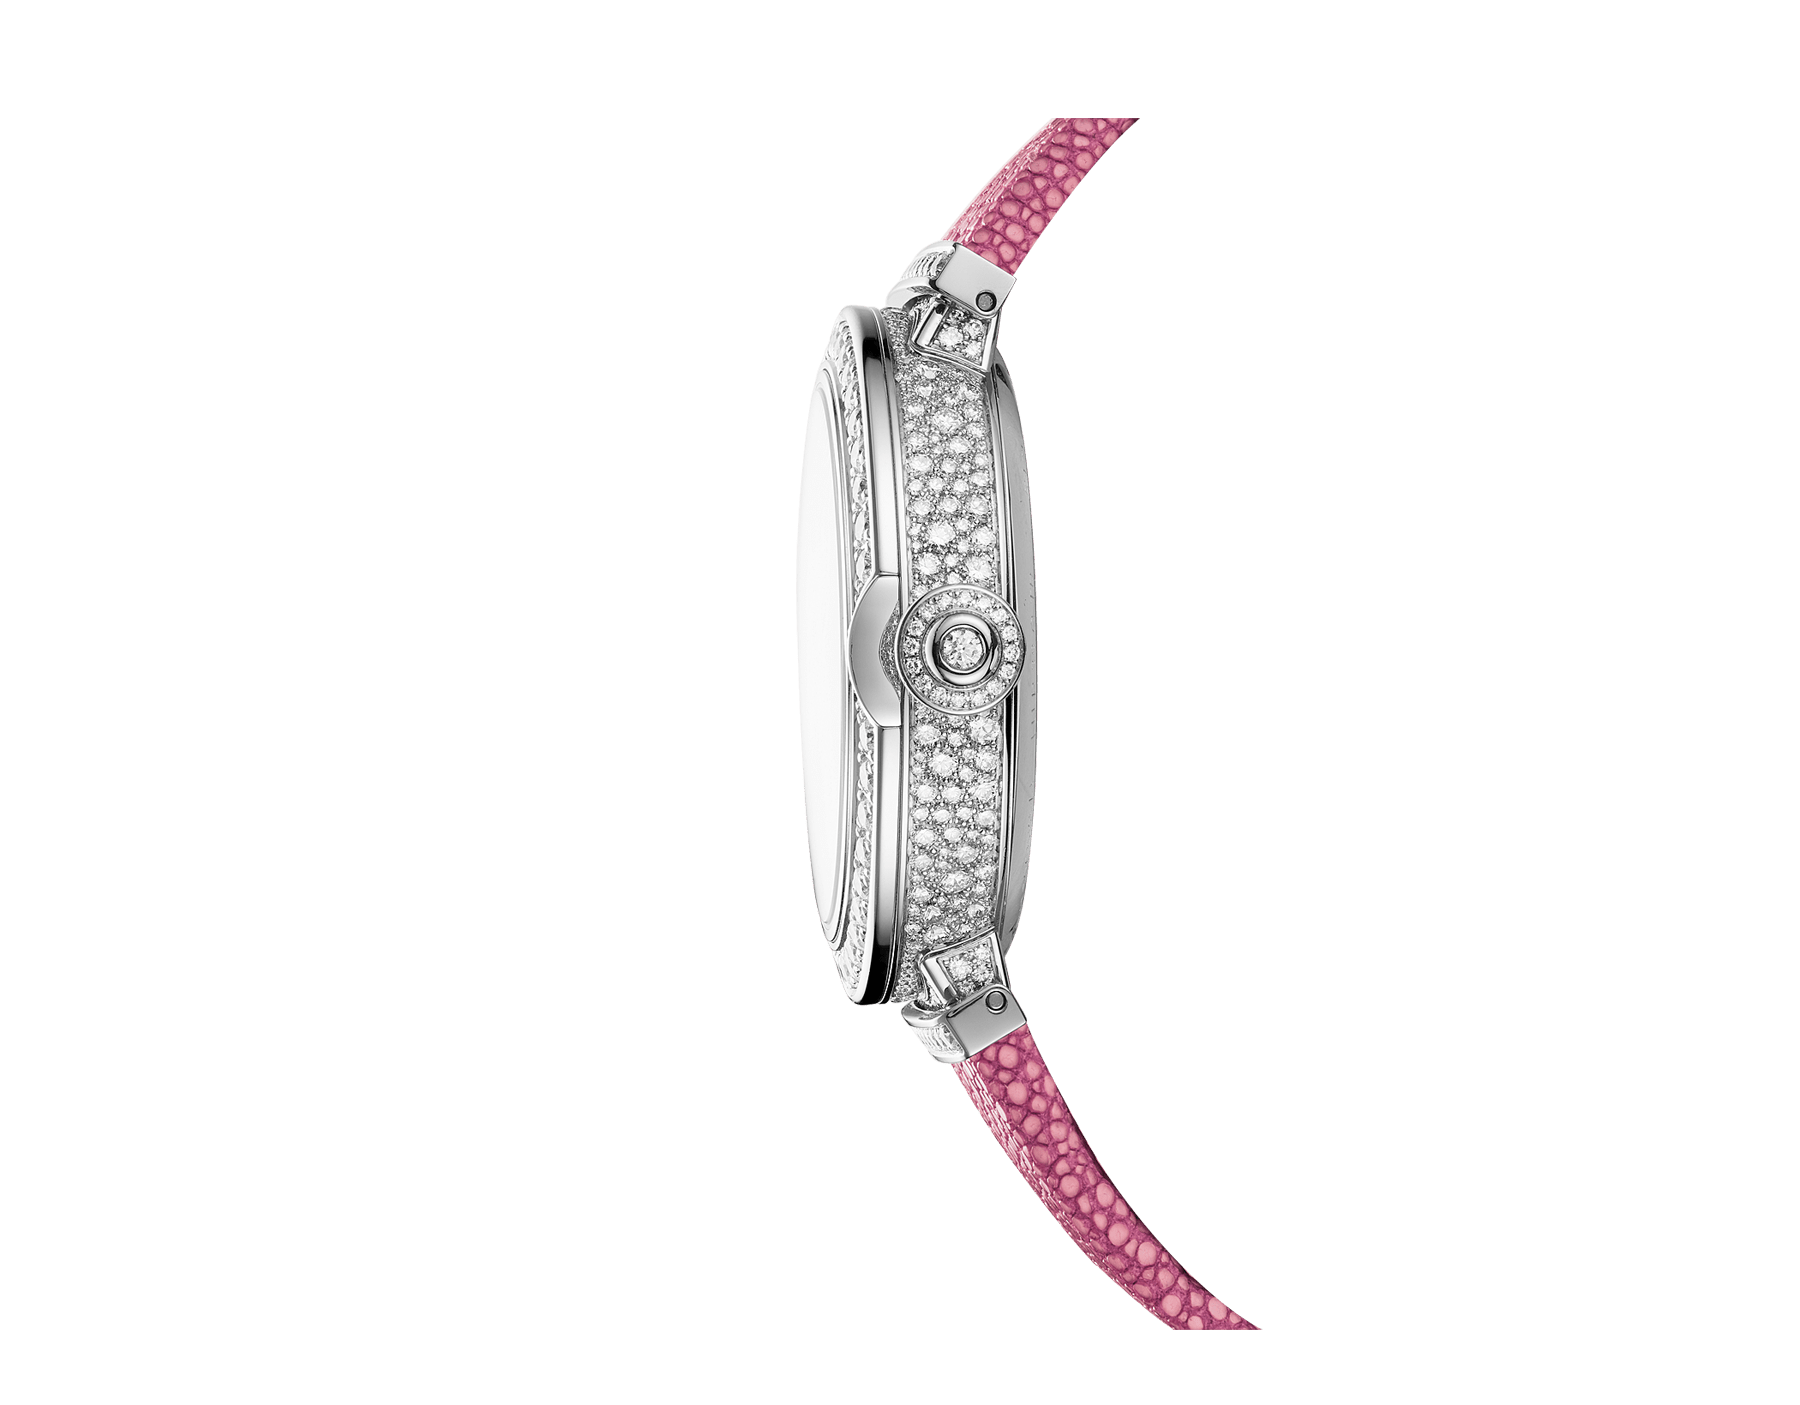 LVCEA Tourbillon Limited Edition watch with mechanical manufacture movement, automatic winding, see-through tourbillon, 18 kt white gold case set with round brilliant-cut diamonds, full-pavé dial with round brilliant-cut diamonds and pink colour finish, and pink galuchat bracelet 102887 image 2